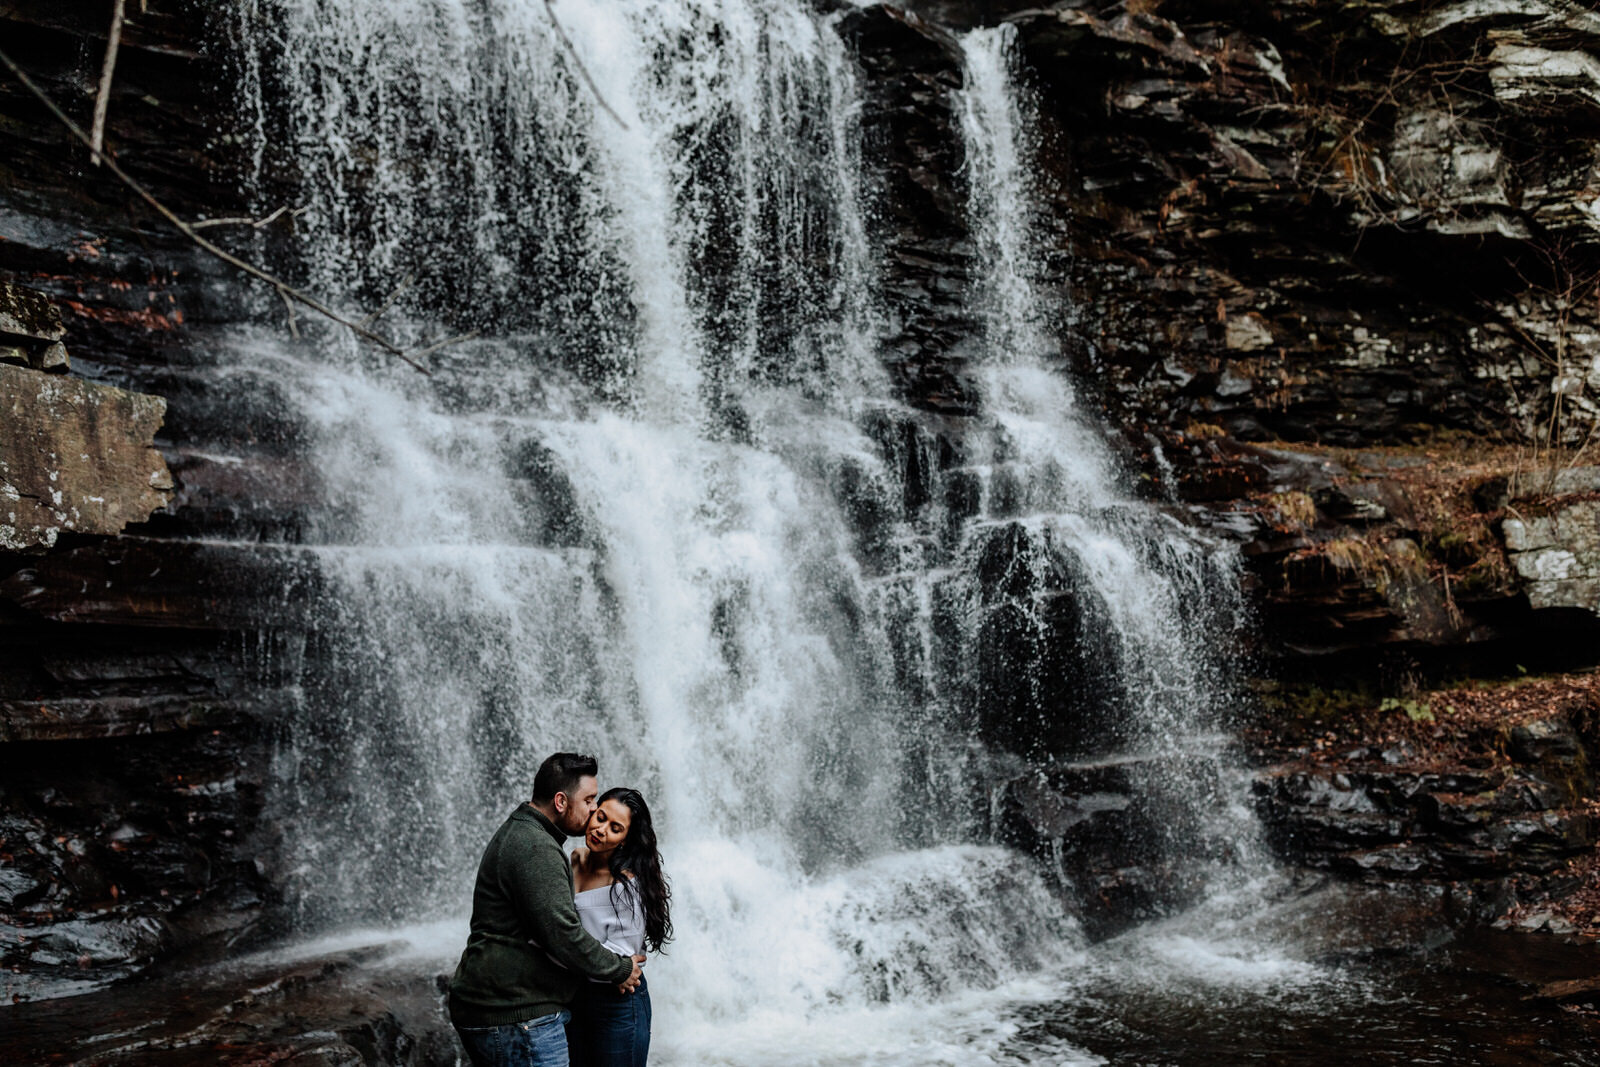 ricketts-glen-waterfall-engagement-photos-131-1